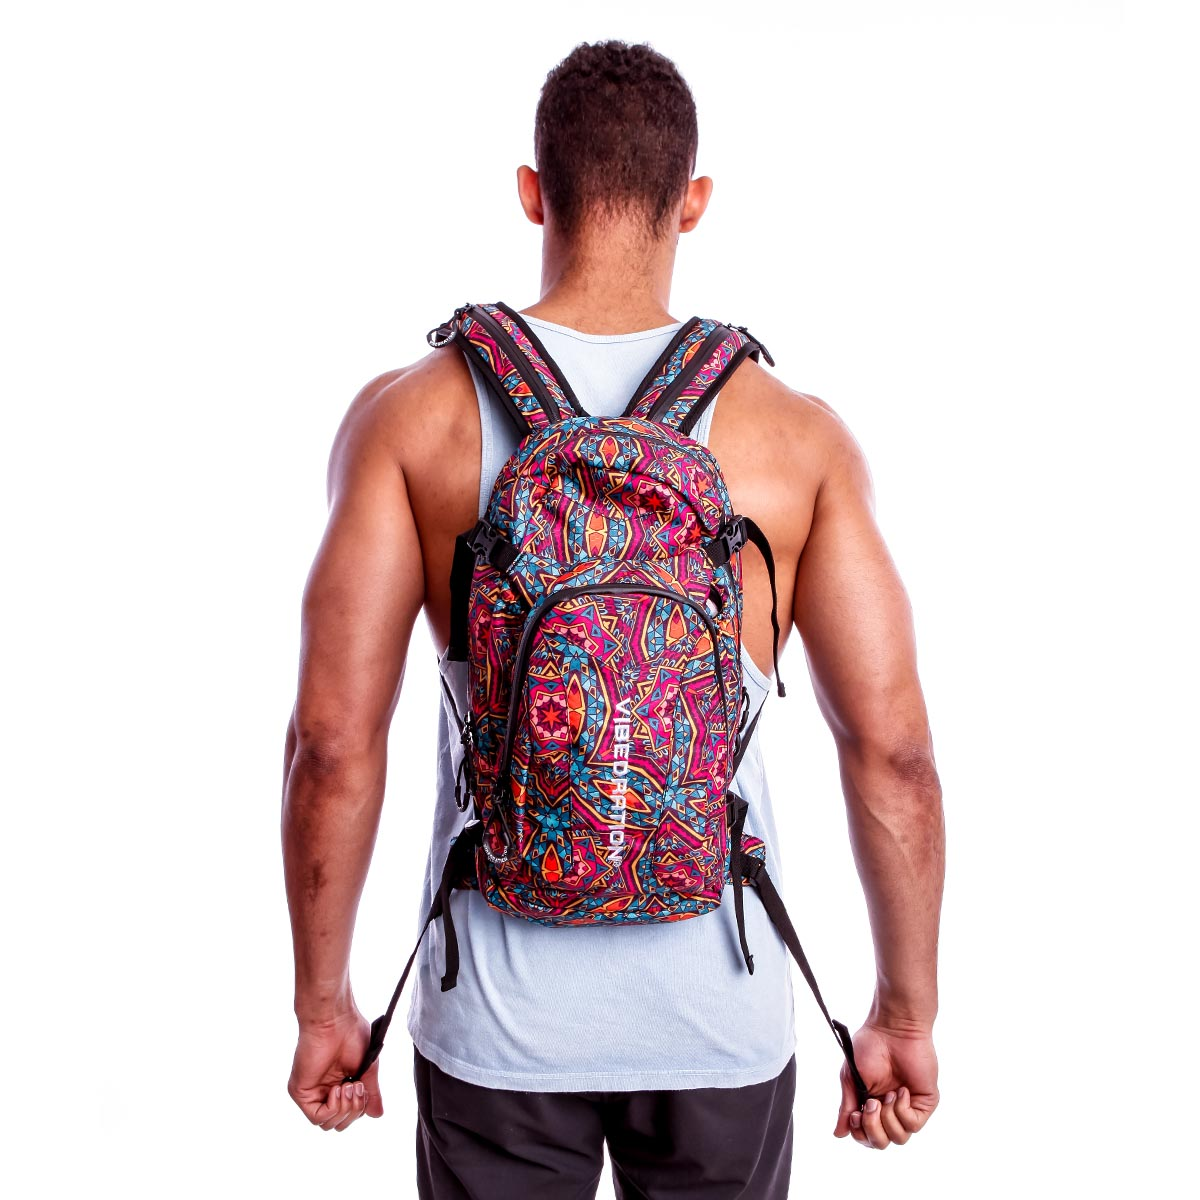 Bohemian printed large Hydration Pack with three liter water bladder